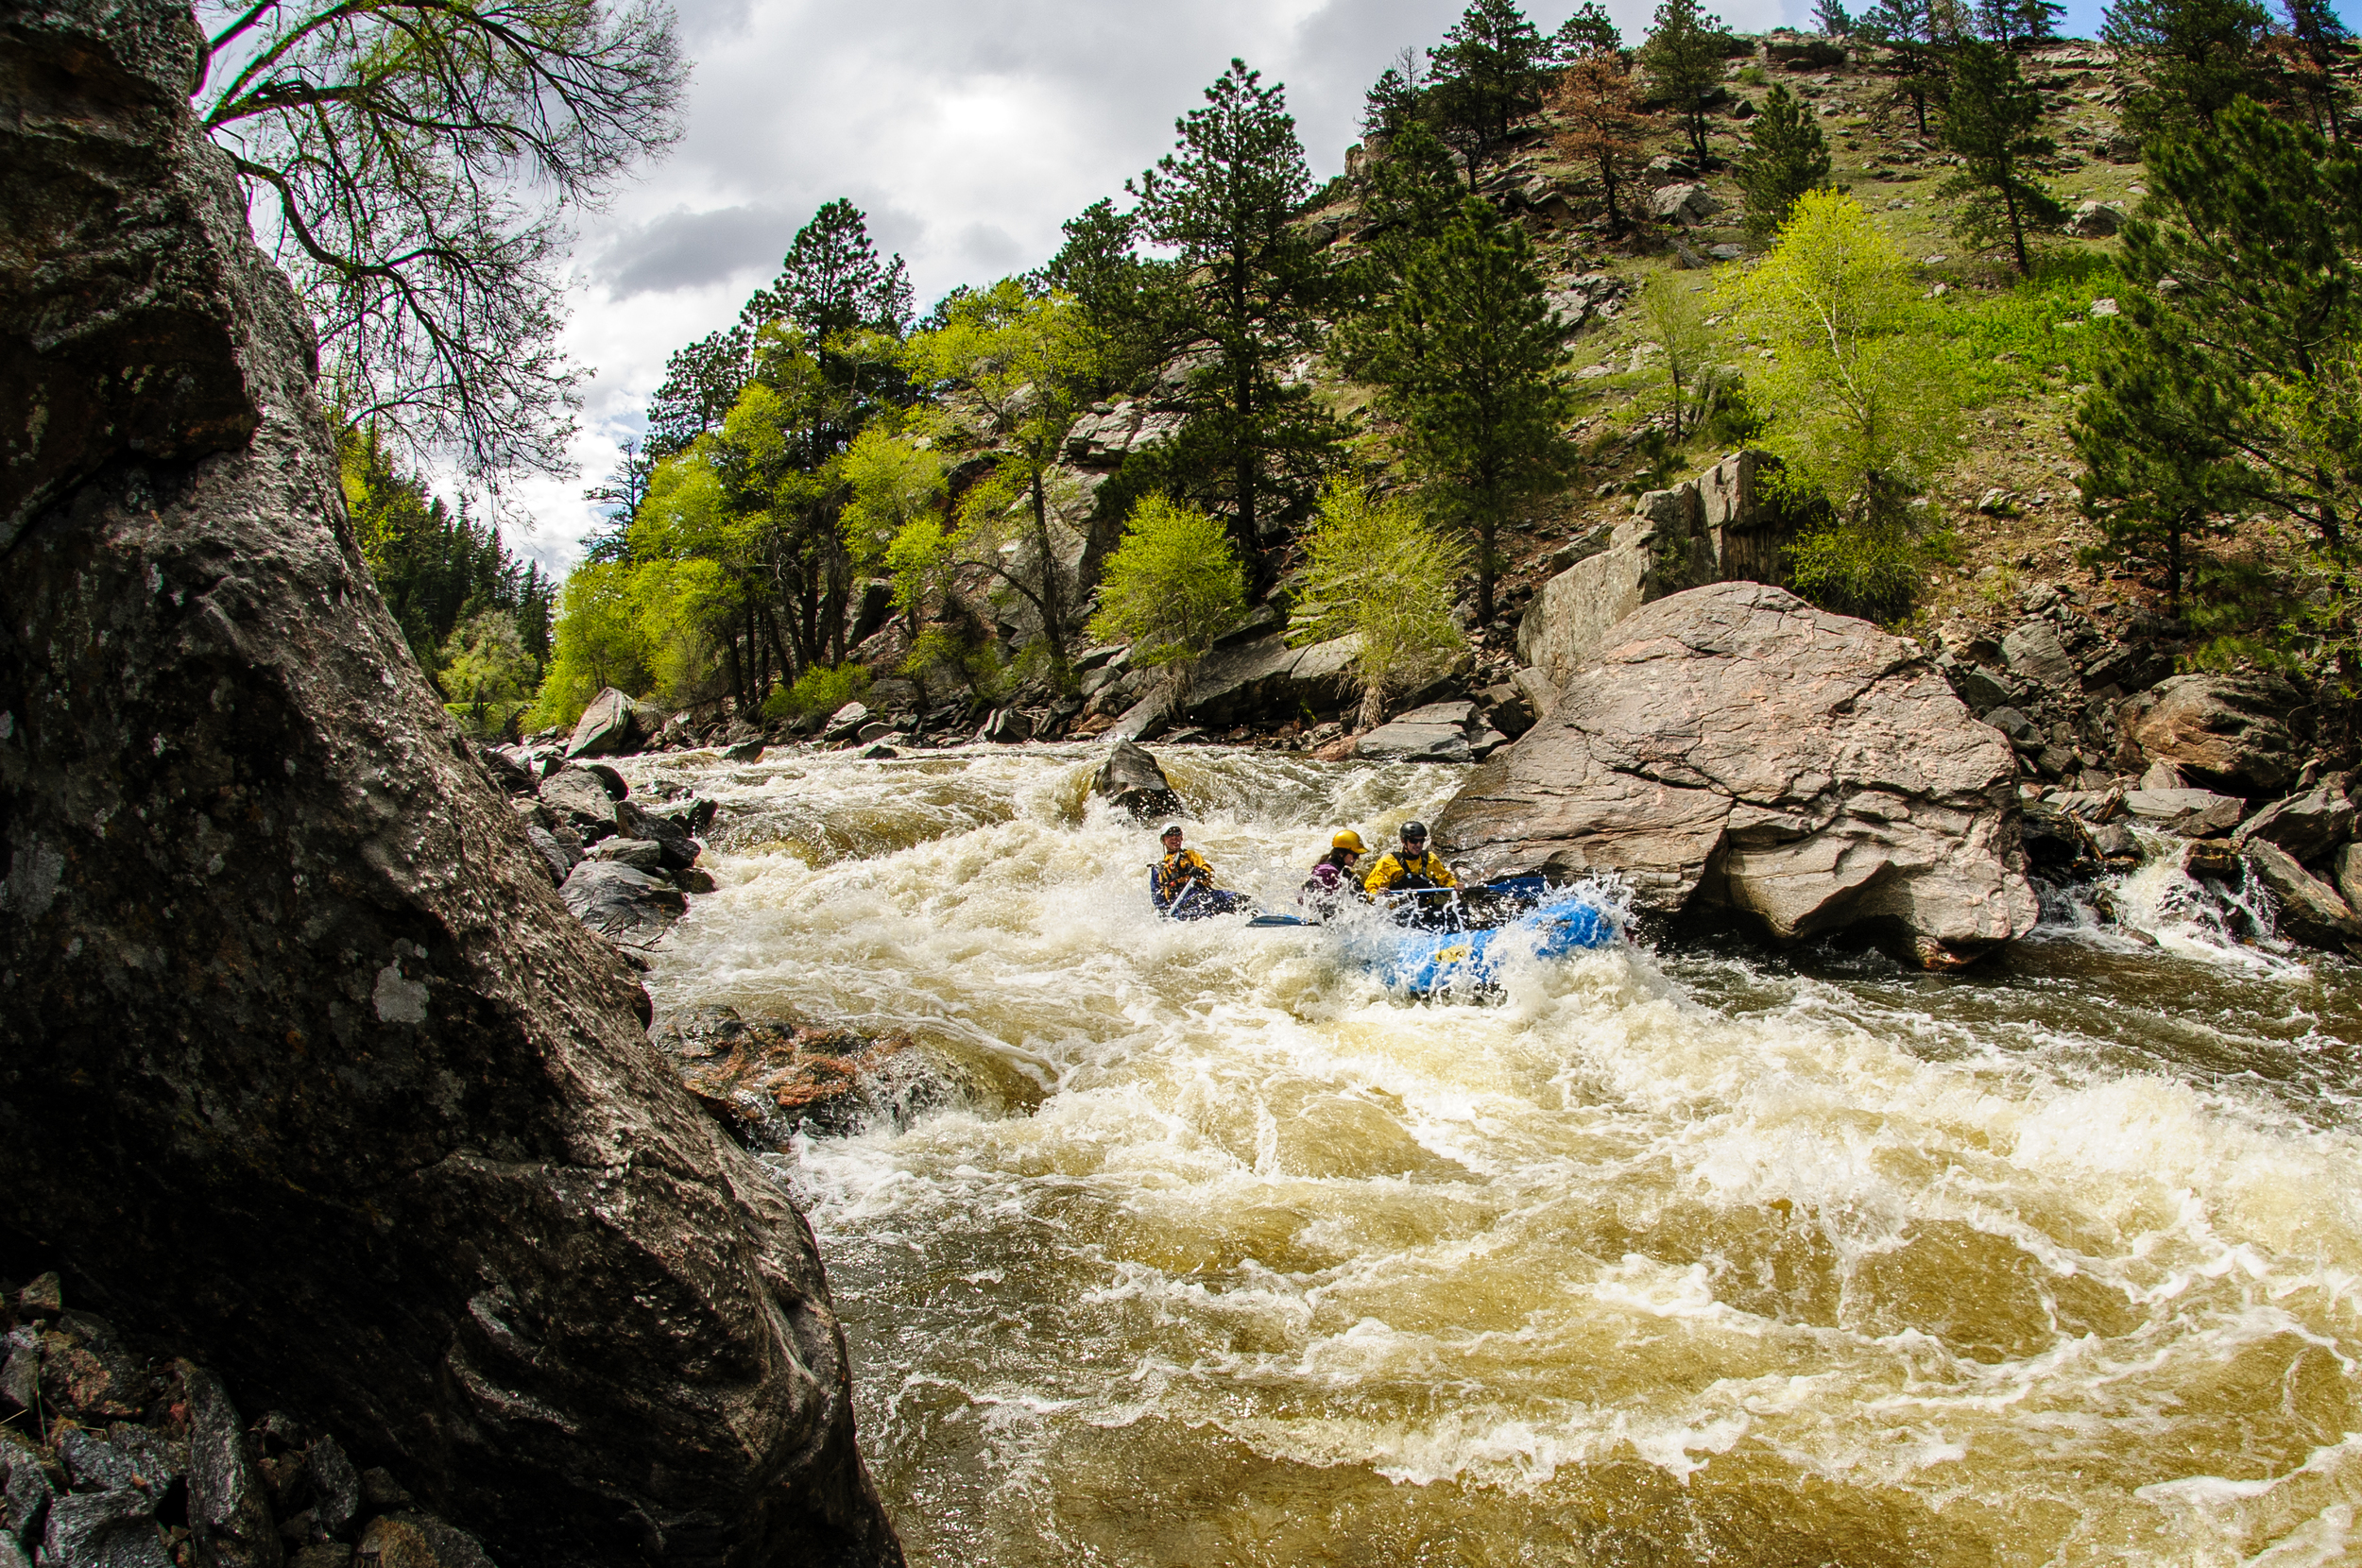 Whitewater rafting on the Poudre (photo courtesy of our friends at Whitewater Mountain Descents, Ft Collins, CO)